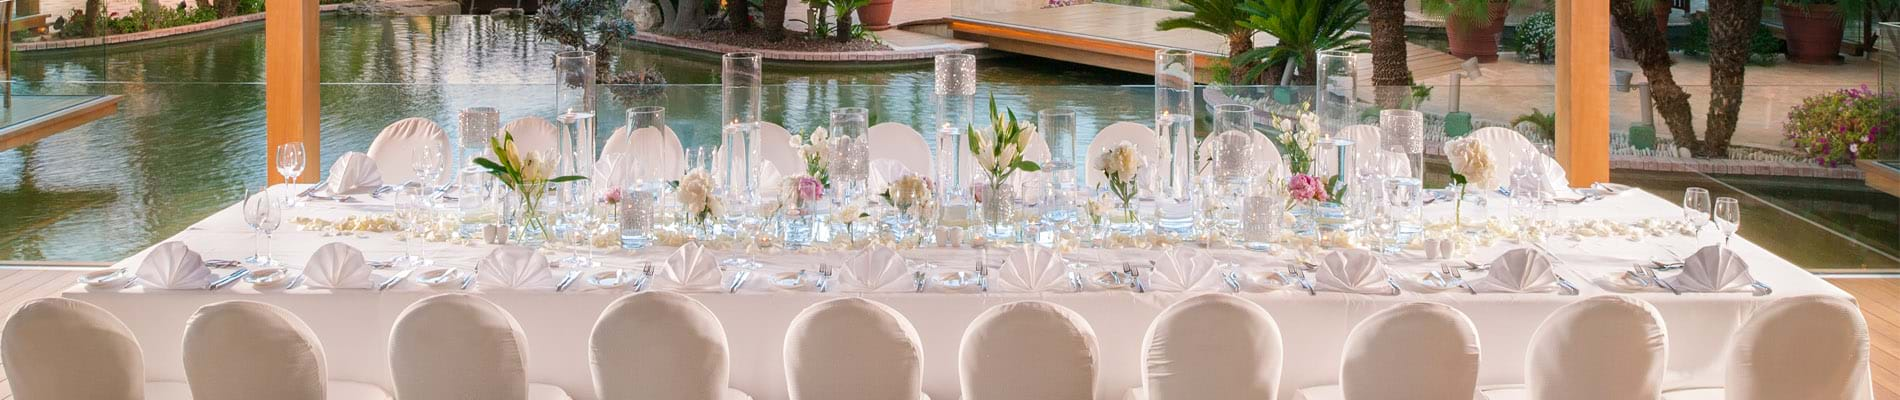 Four Seasons Cyprus weddings in Limassol, Luxury Wedding Venues in Limassol, Luxury Weddings in Limassol